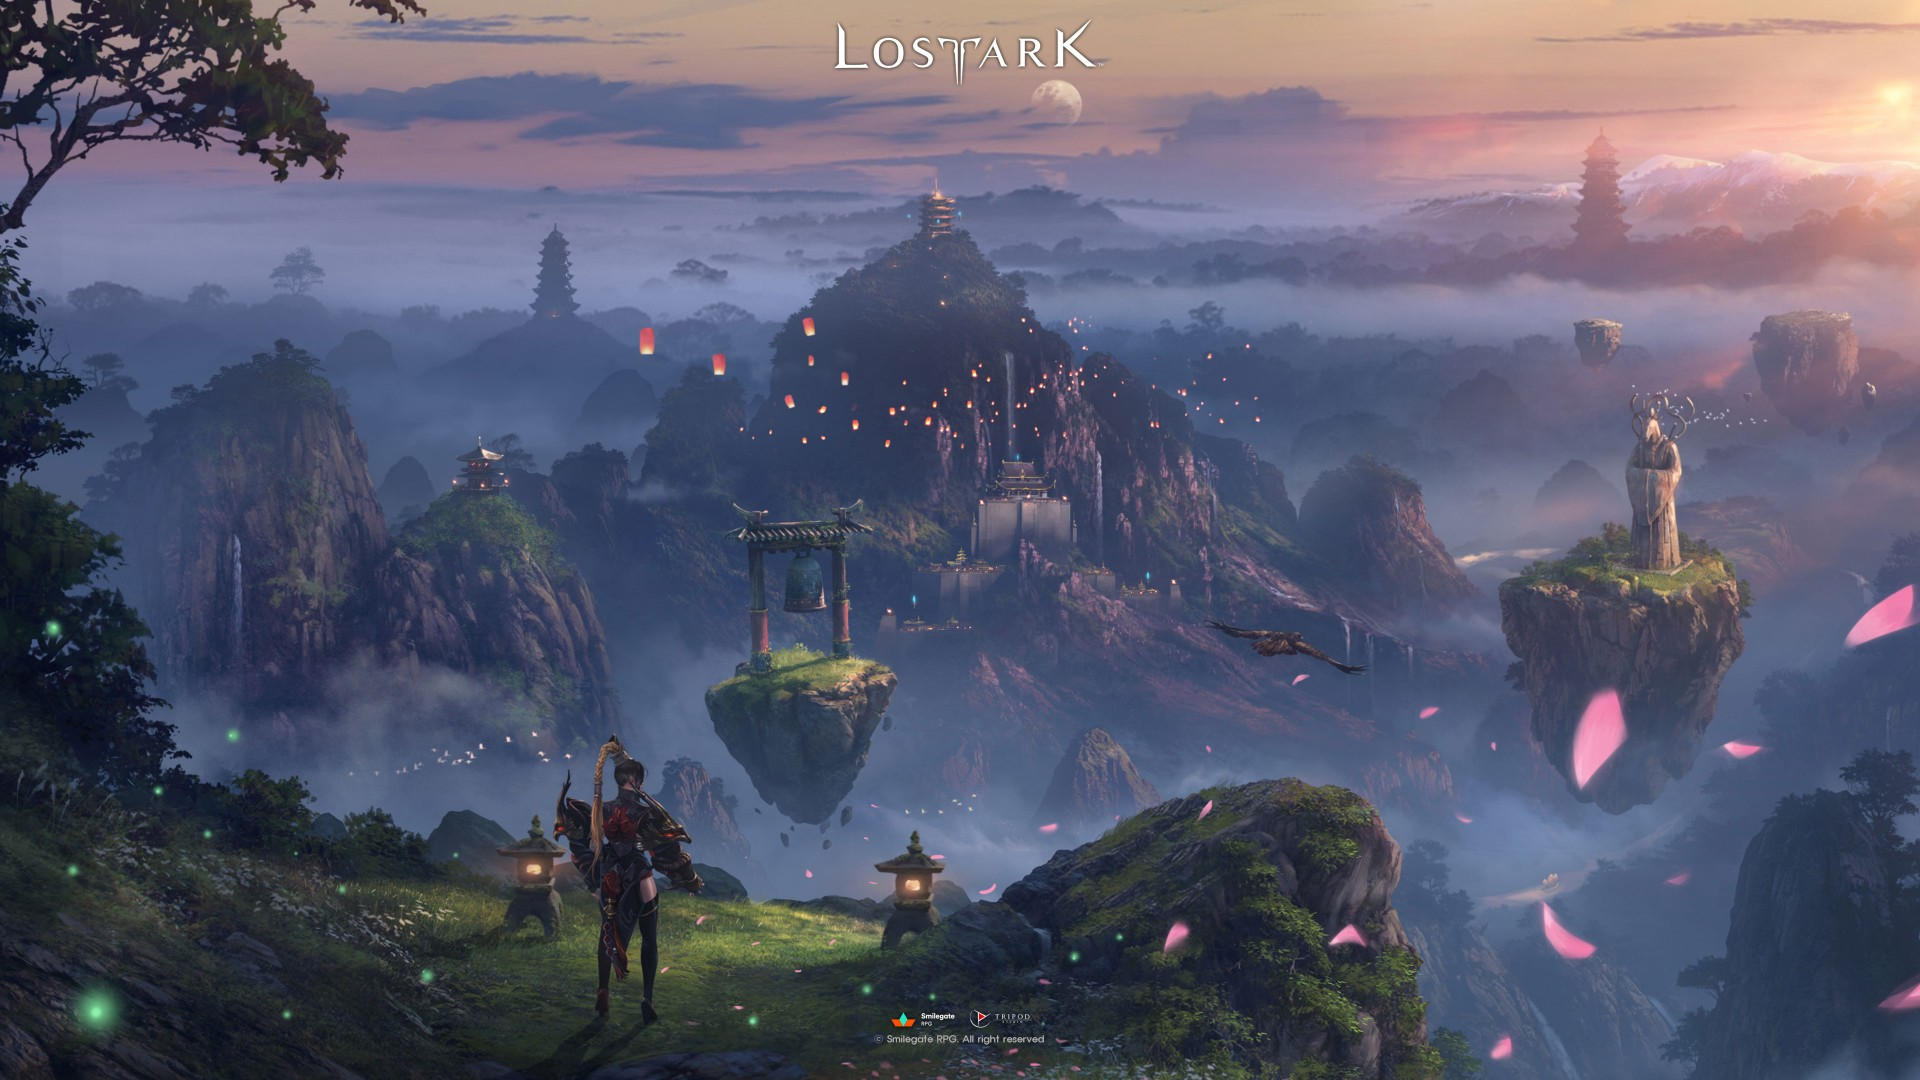 The Most Anticipated MMORPG: Lost Ark's Open Beta Begins